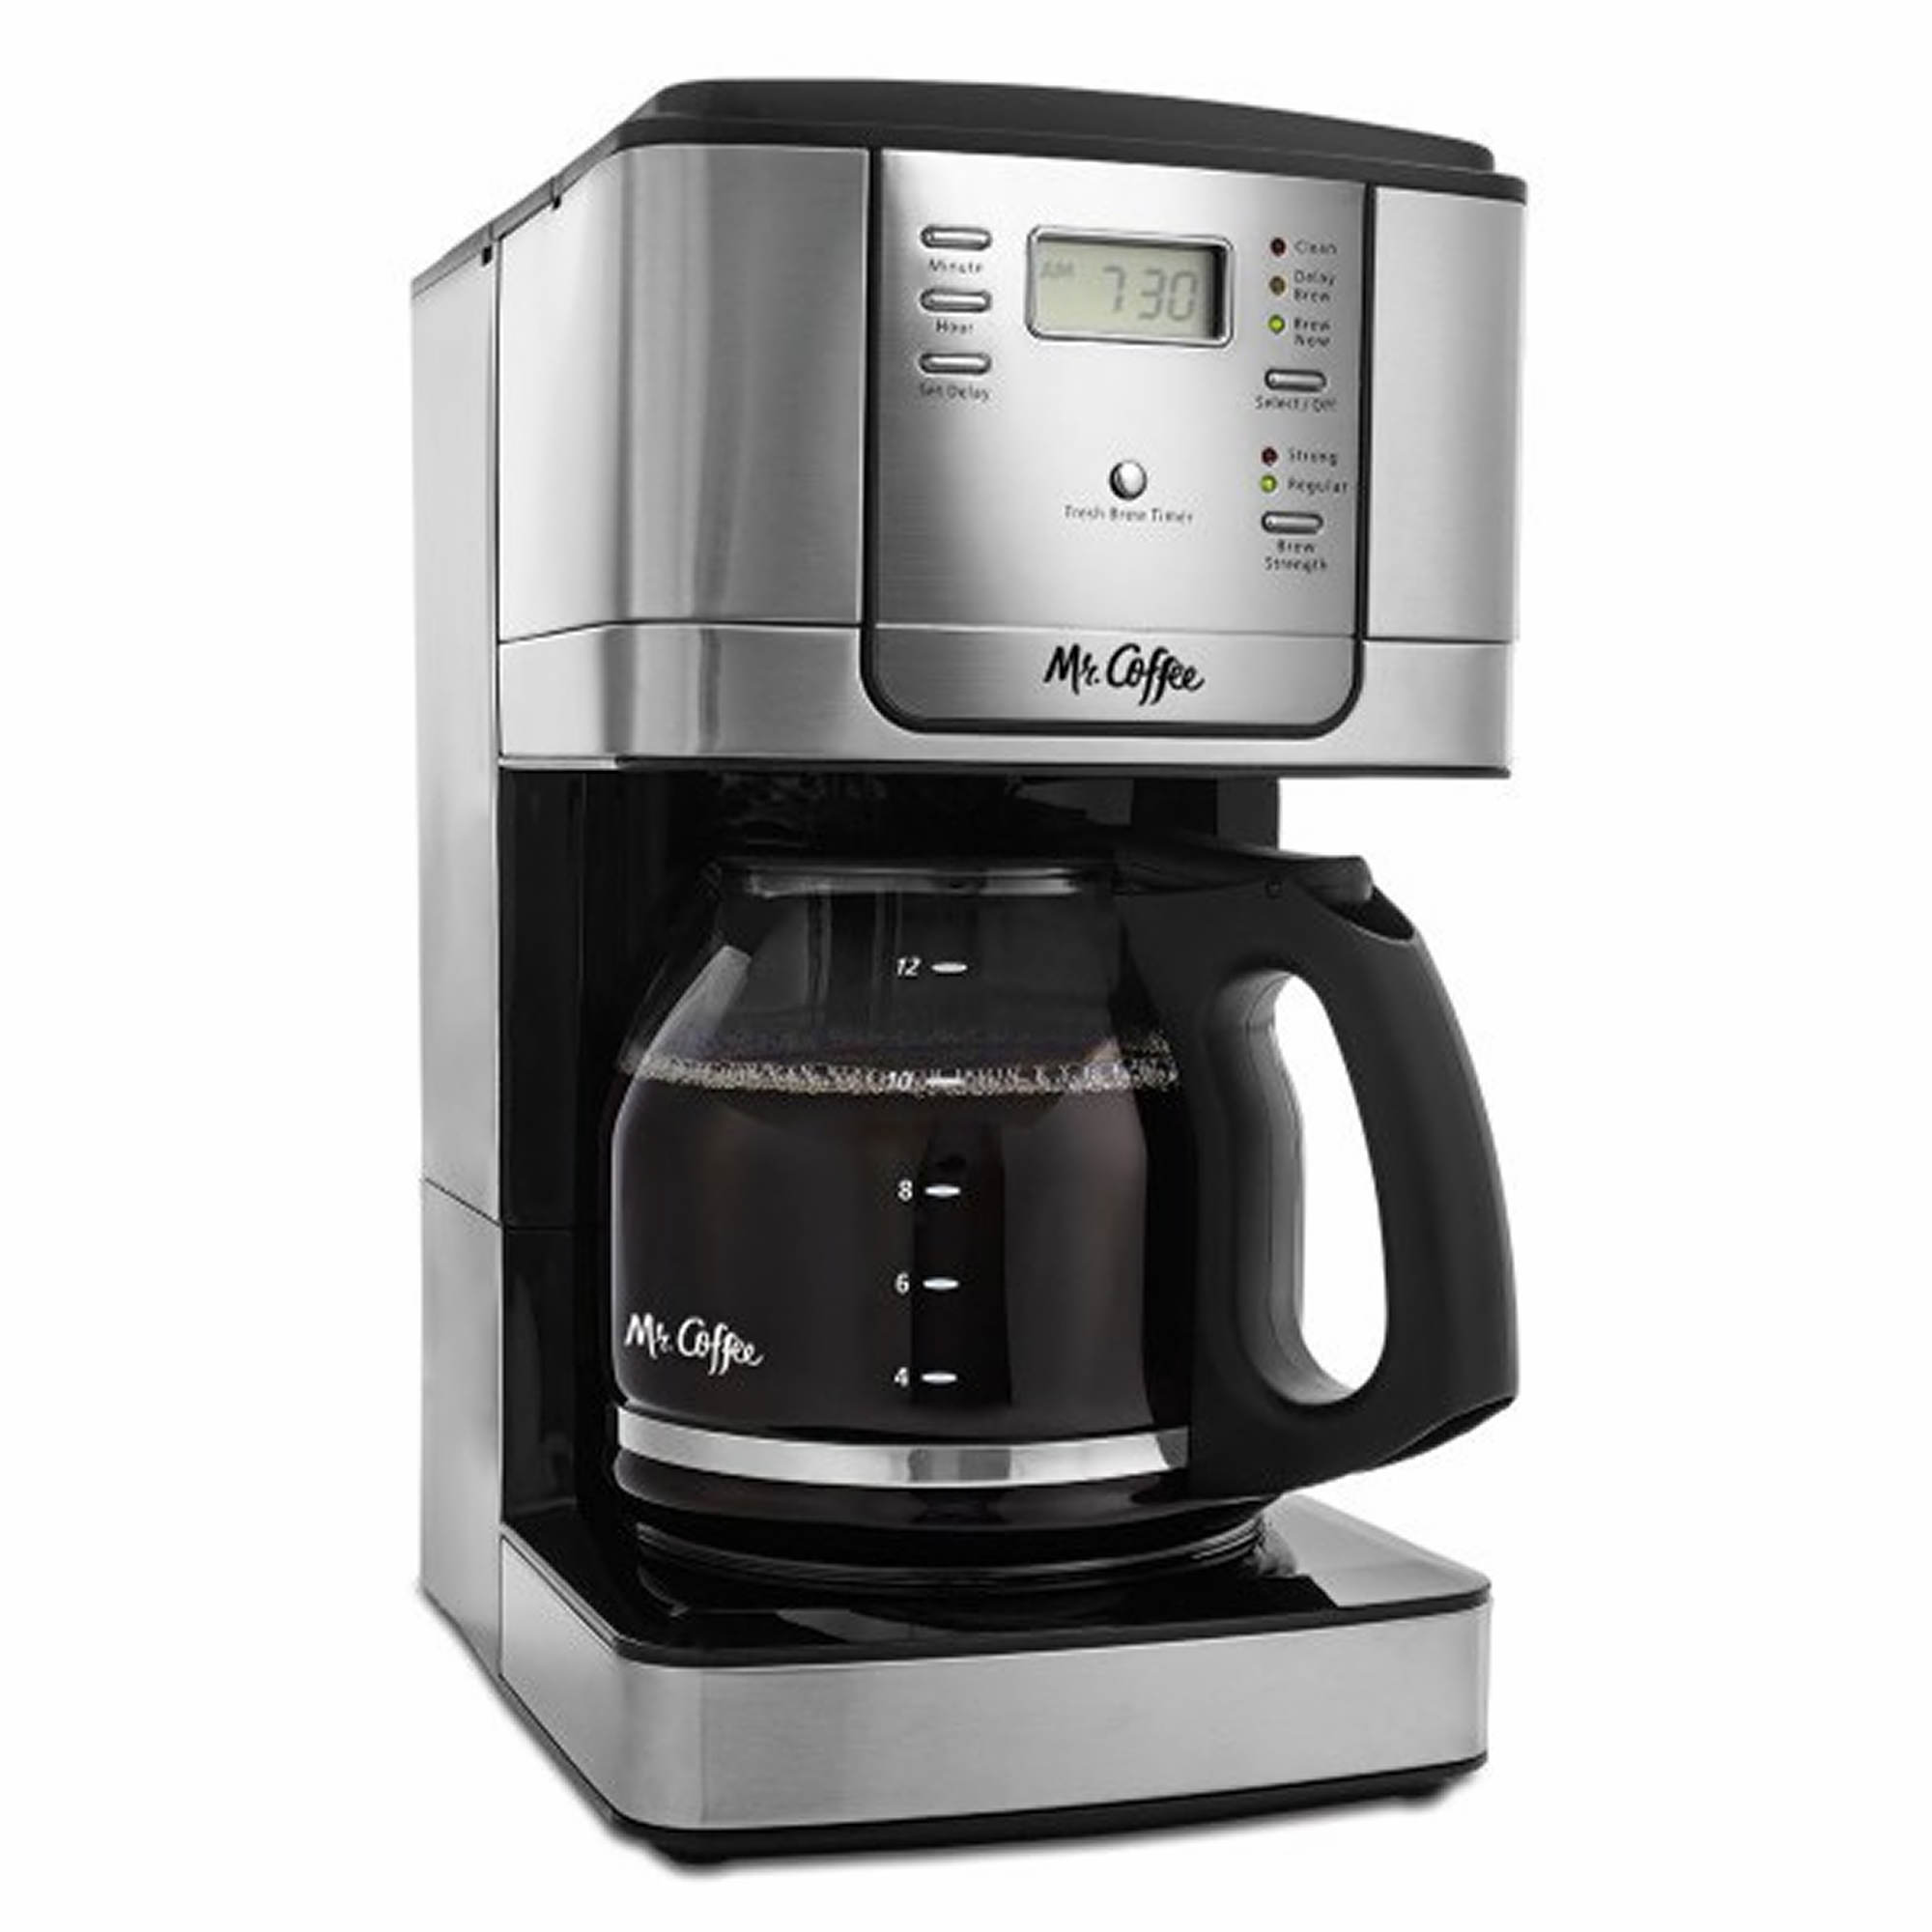 Mr. Coffee 12-Cup Programmable Coffee Maker - Black/Stainless Steel - BJ s Wholesale Club